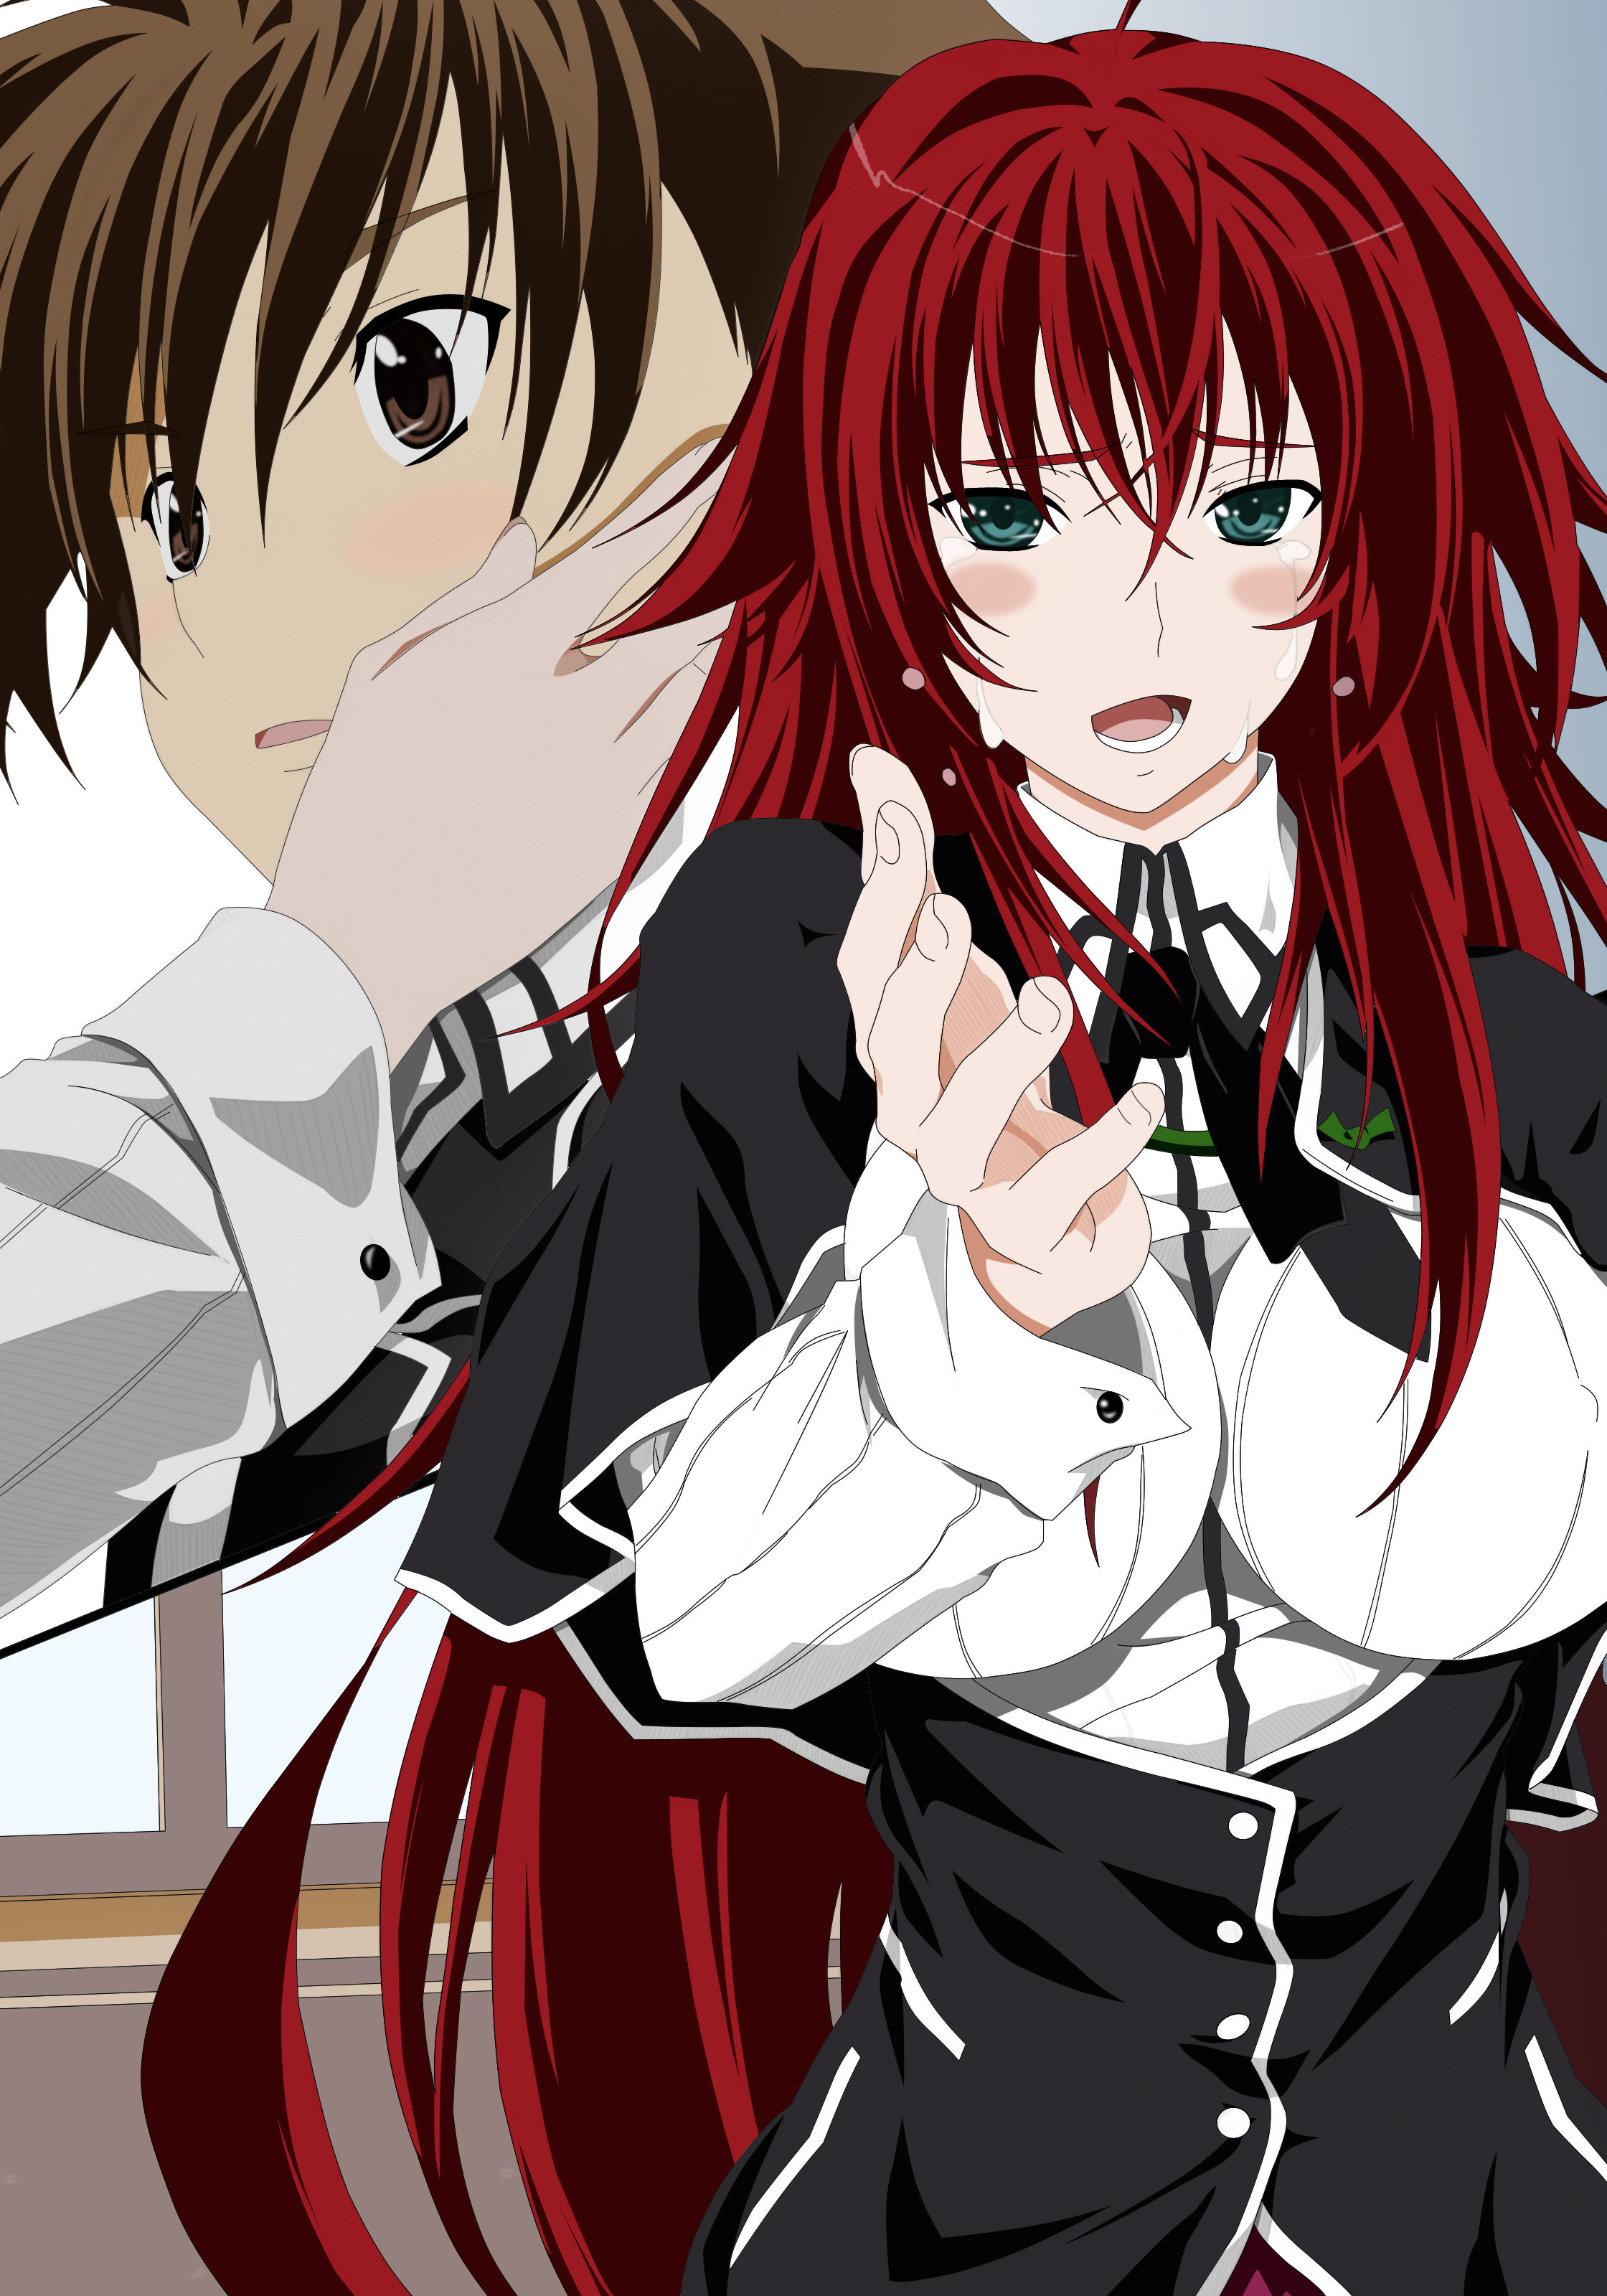 Issei Hyoudou and Rias Gremory by Maximilian-Destroyer on